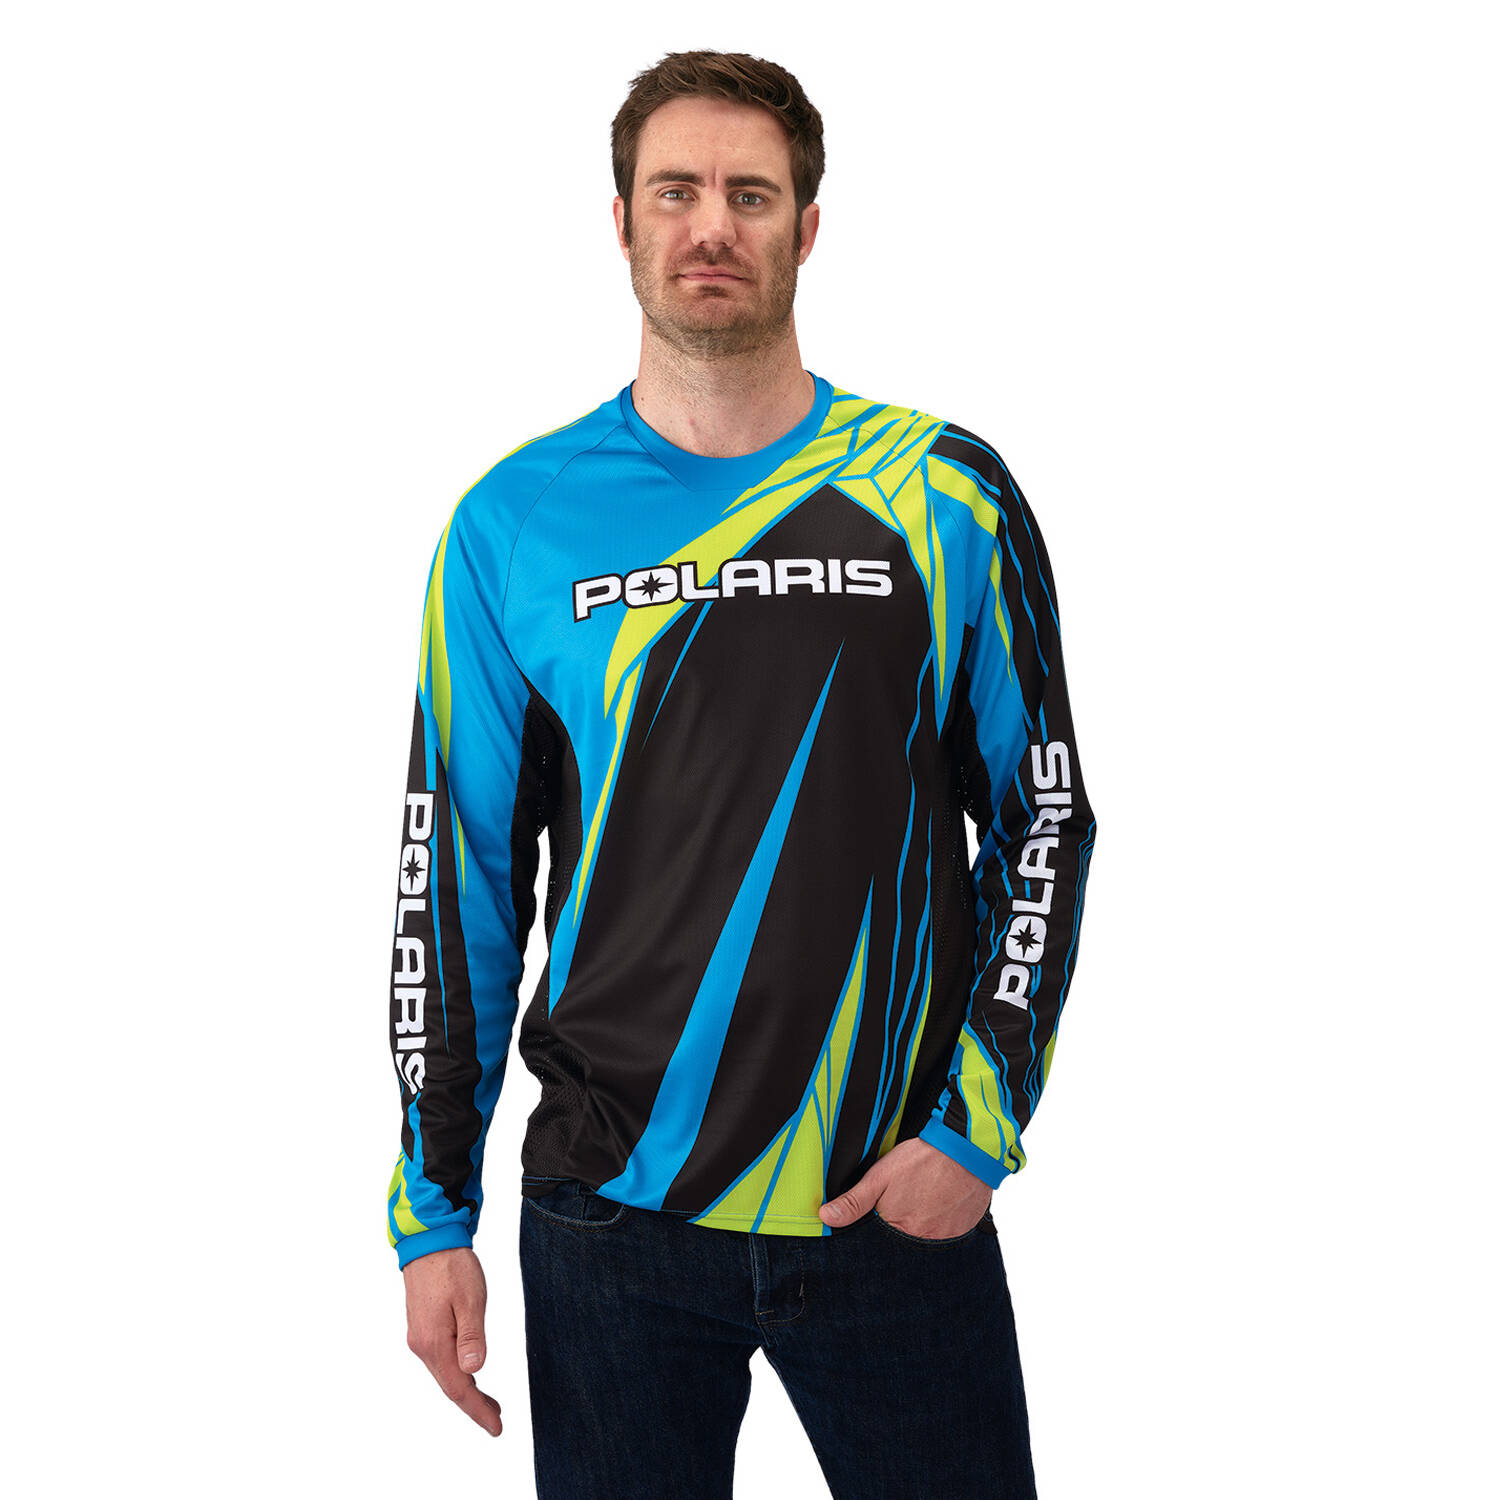 Unisex Long-Sleeve Off-Road Riding Jersey with Mesh Ventilated Panels, Blue and Lime